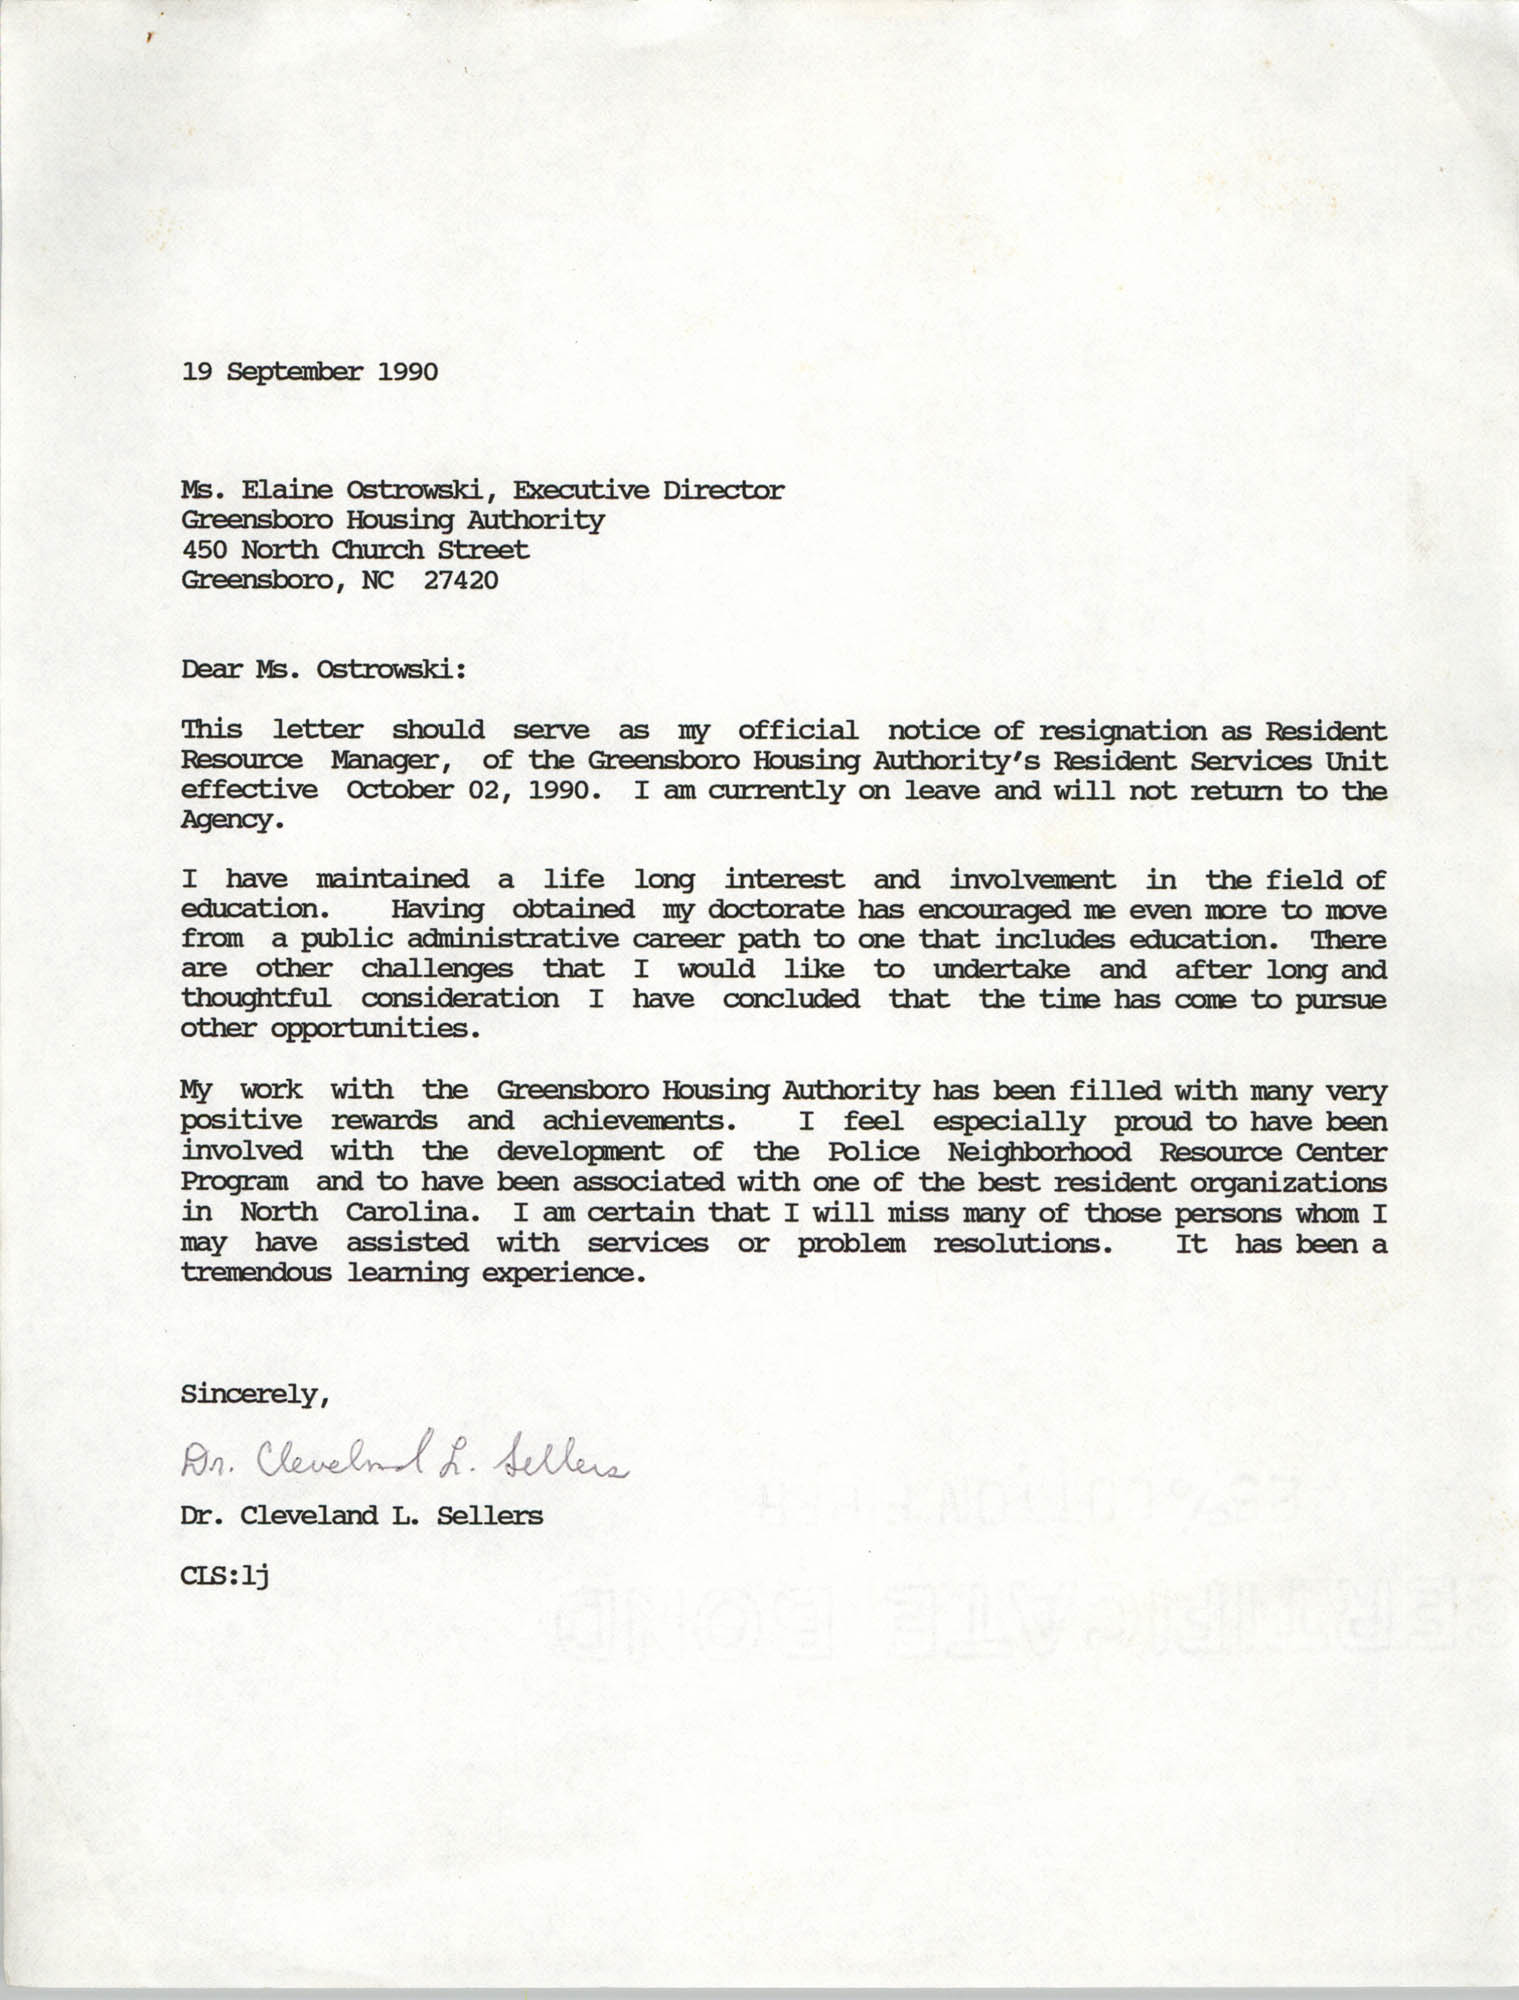 Letter from Cleveland Sellers to Elaine Ostrowski, September 19, 1990